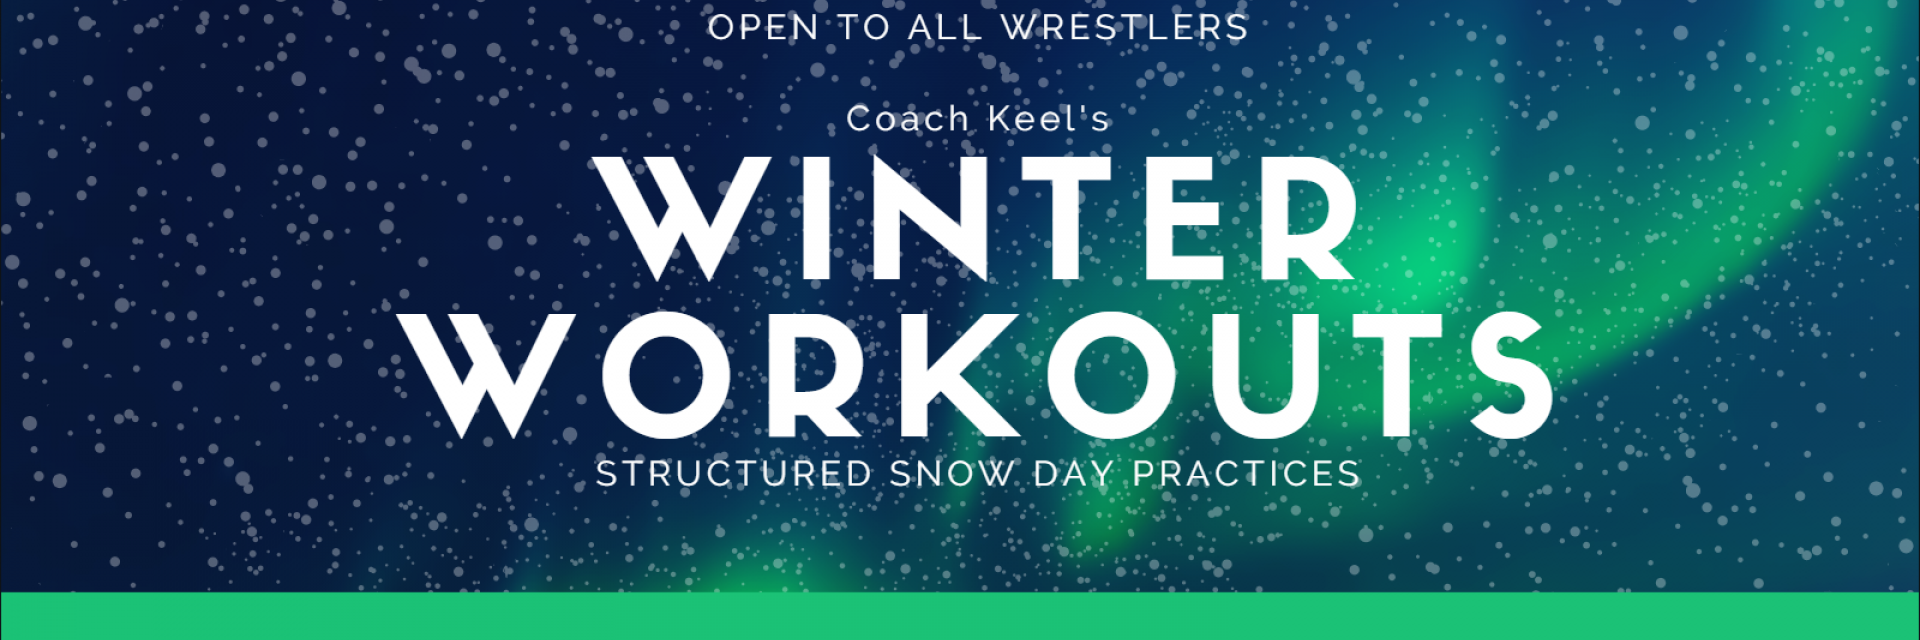 Winter Workouts